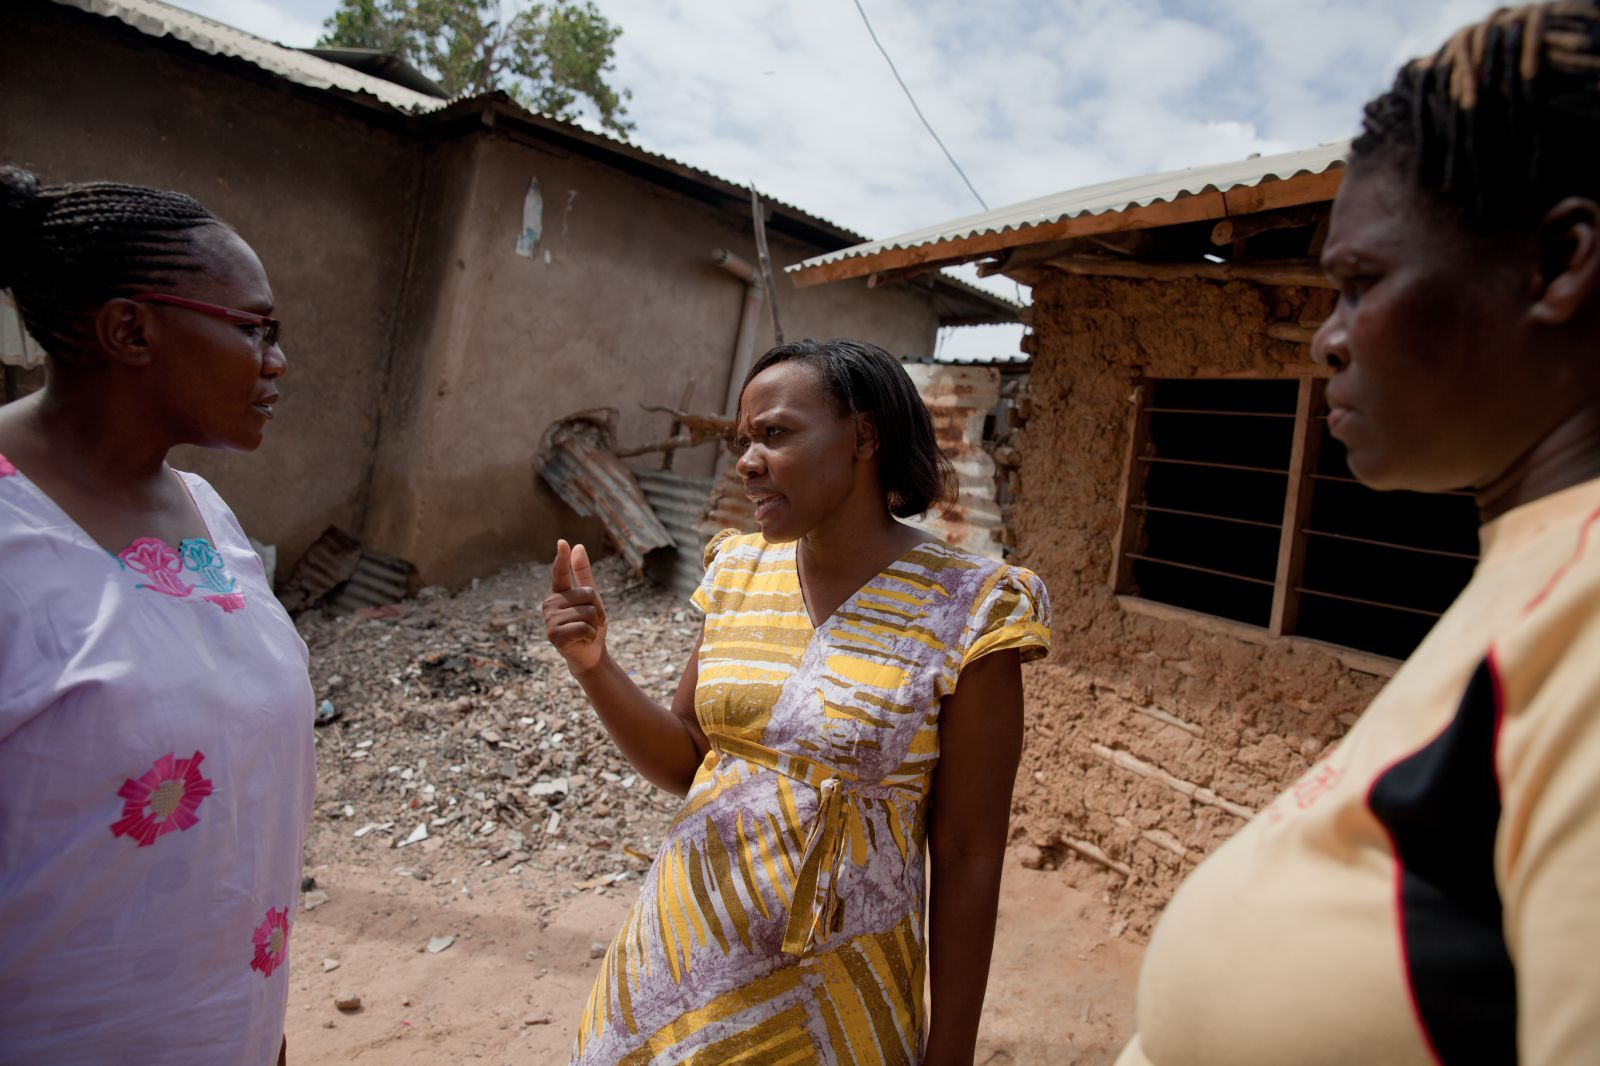 A Kenyan mother, disappearing Indian businessmen, and the